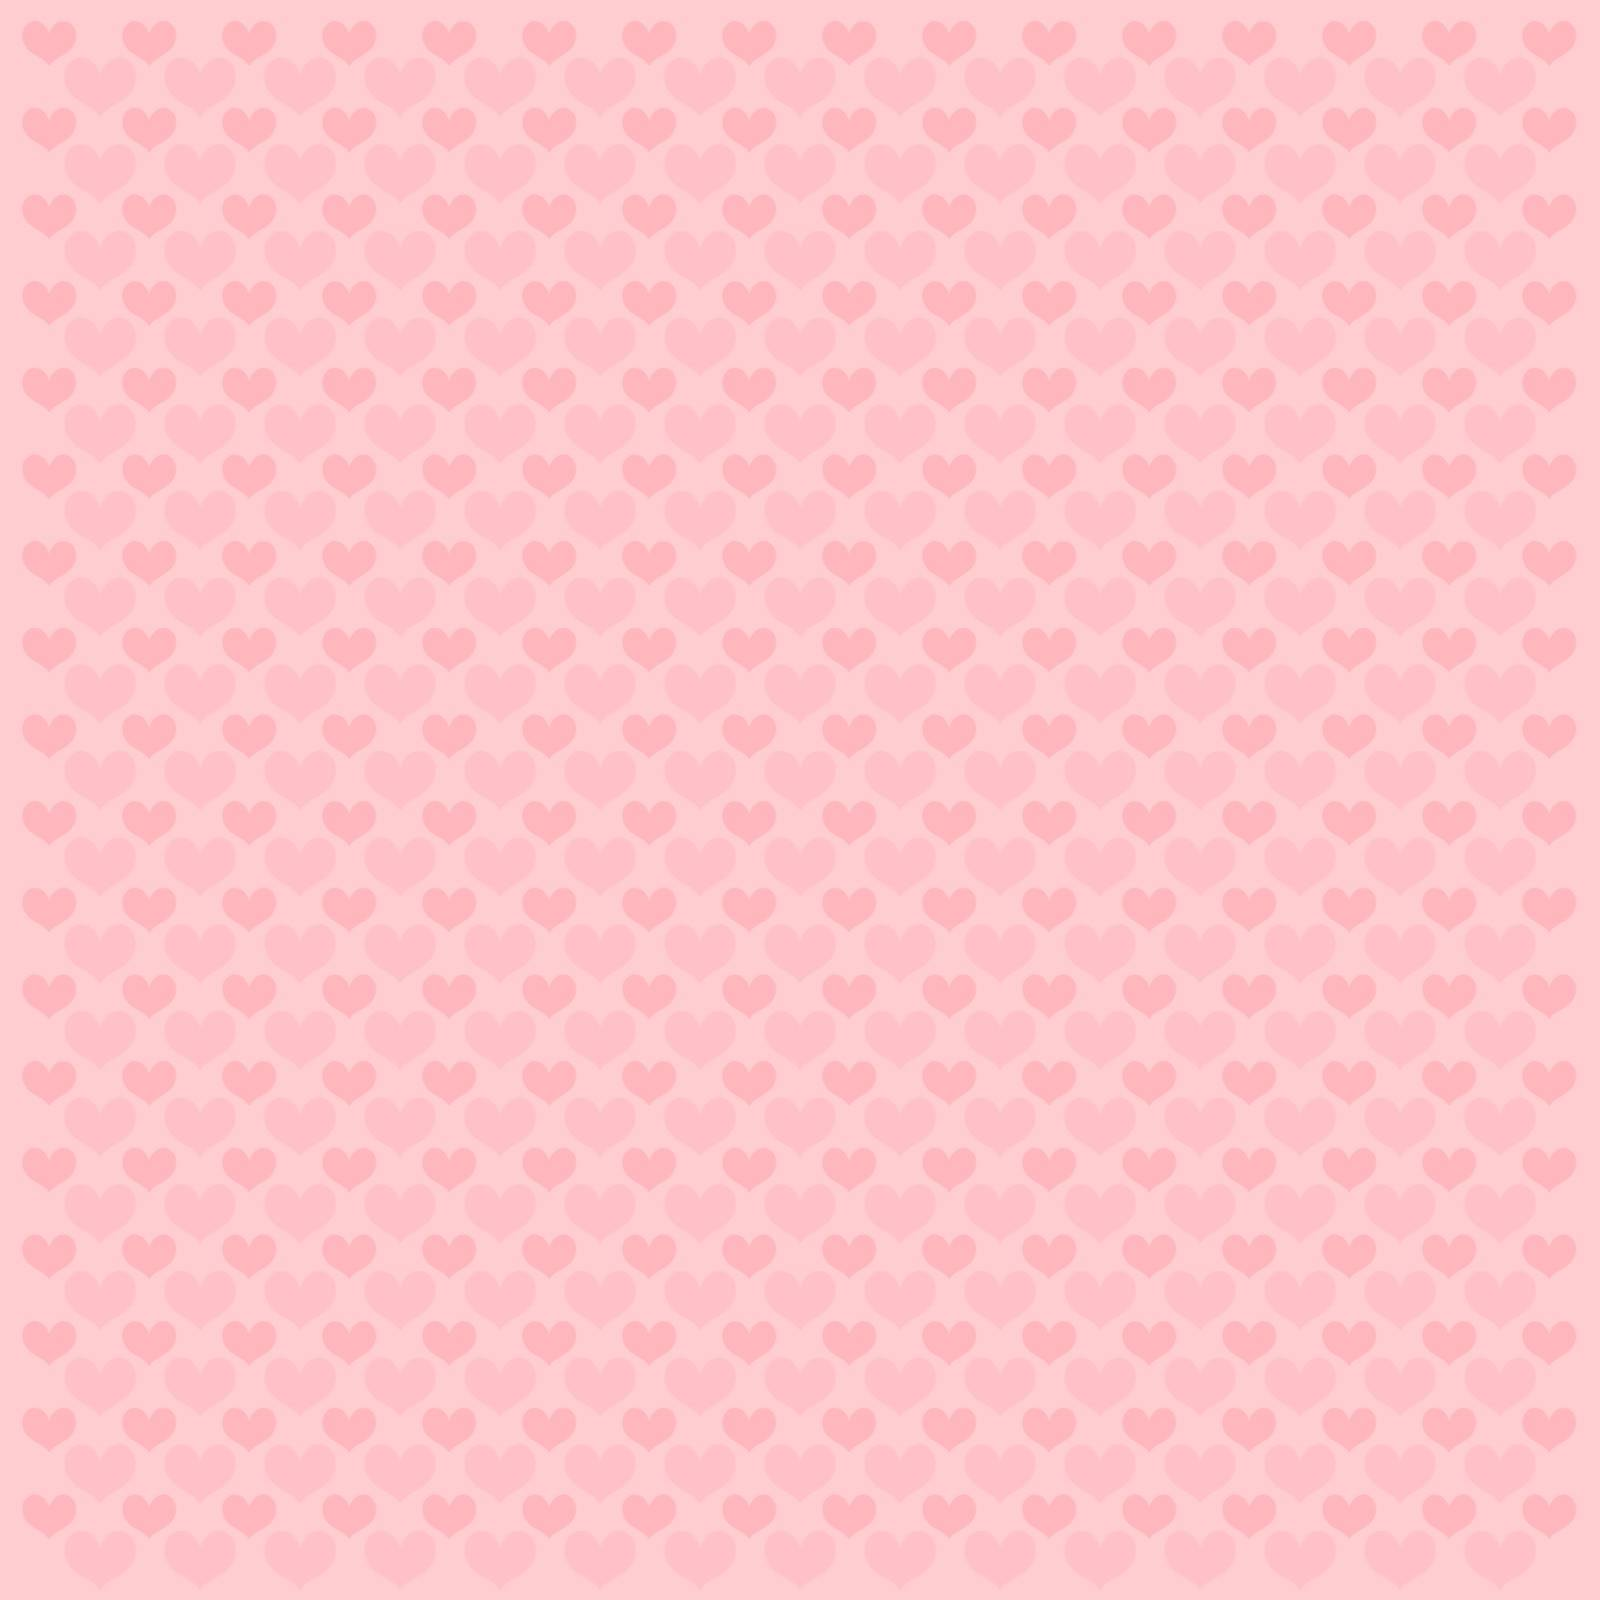 valentine vector pattern background made of pink hearts shapes